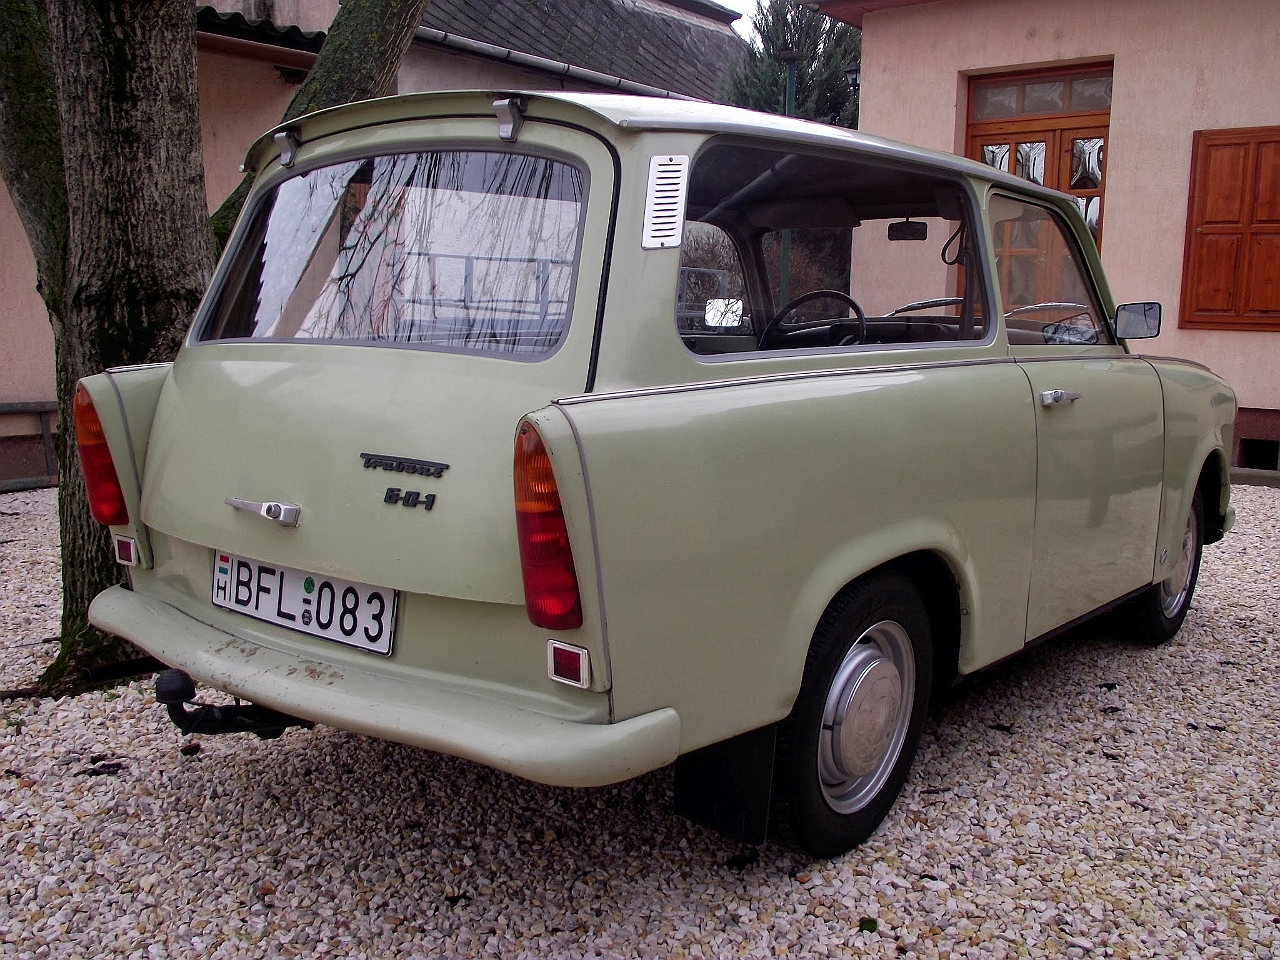 trabant cars news videos images websites wiki. Black Bedroom Furniture Sets. Home Design Ideas